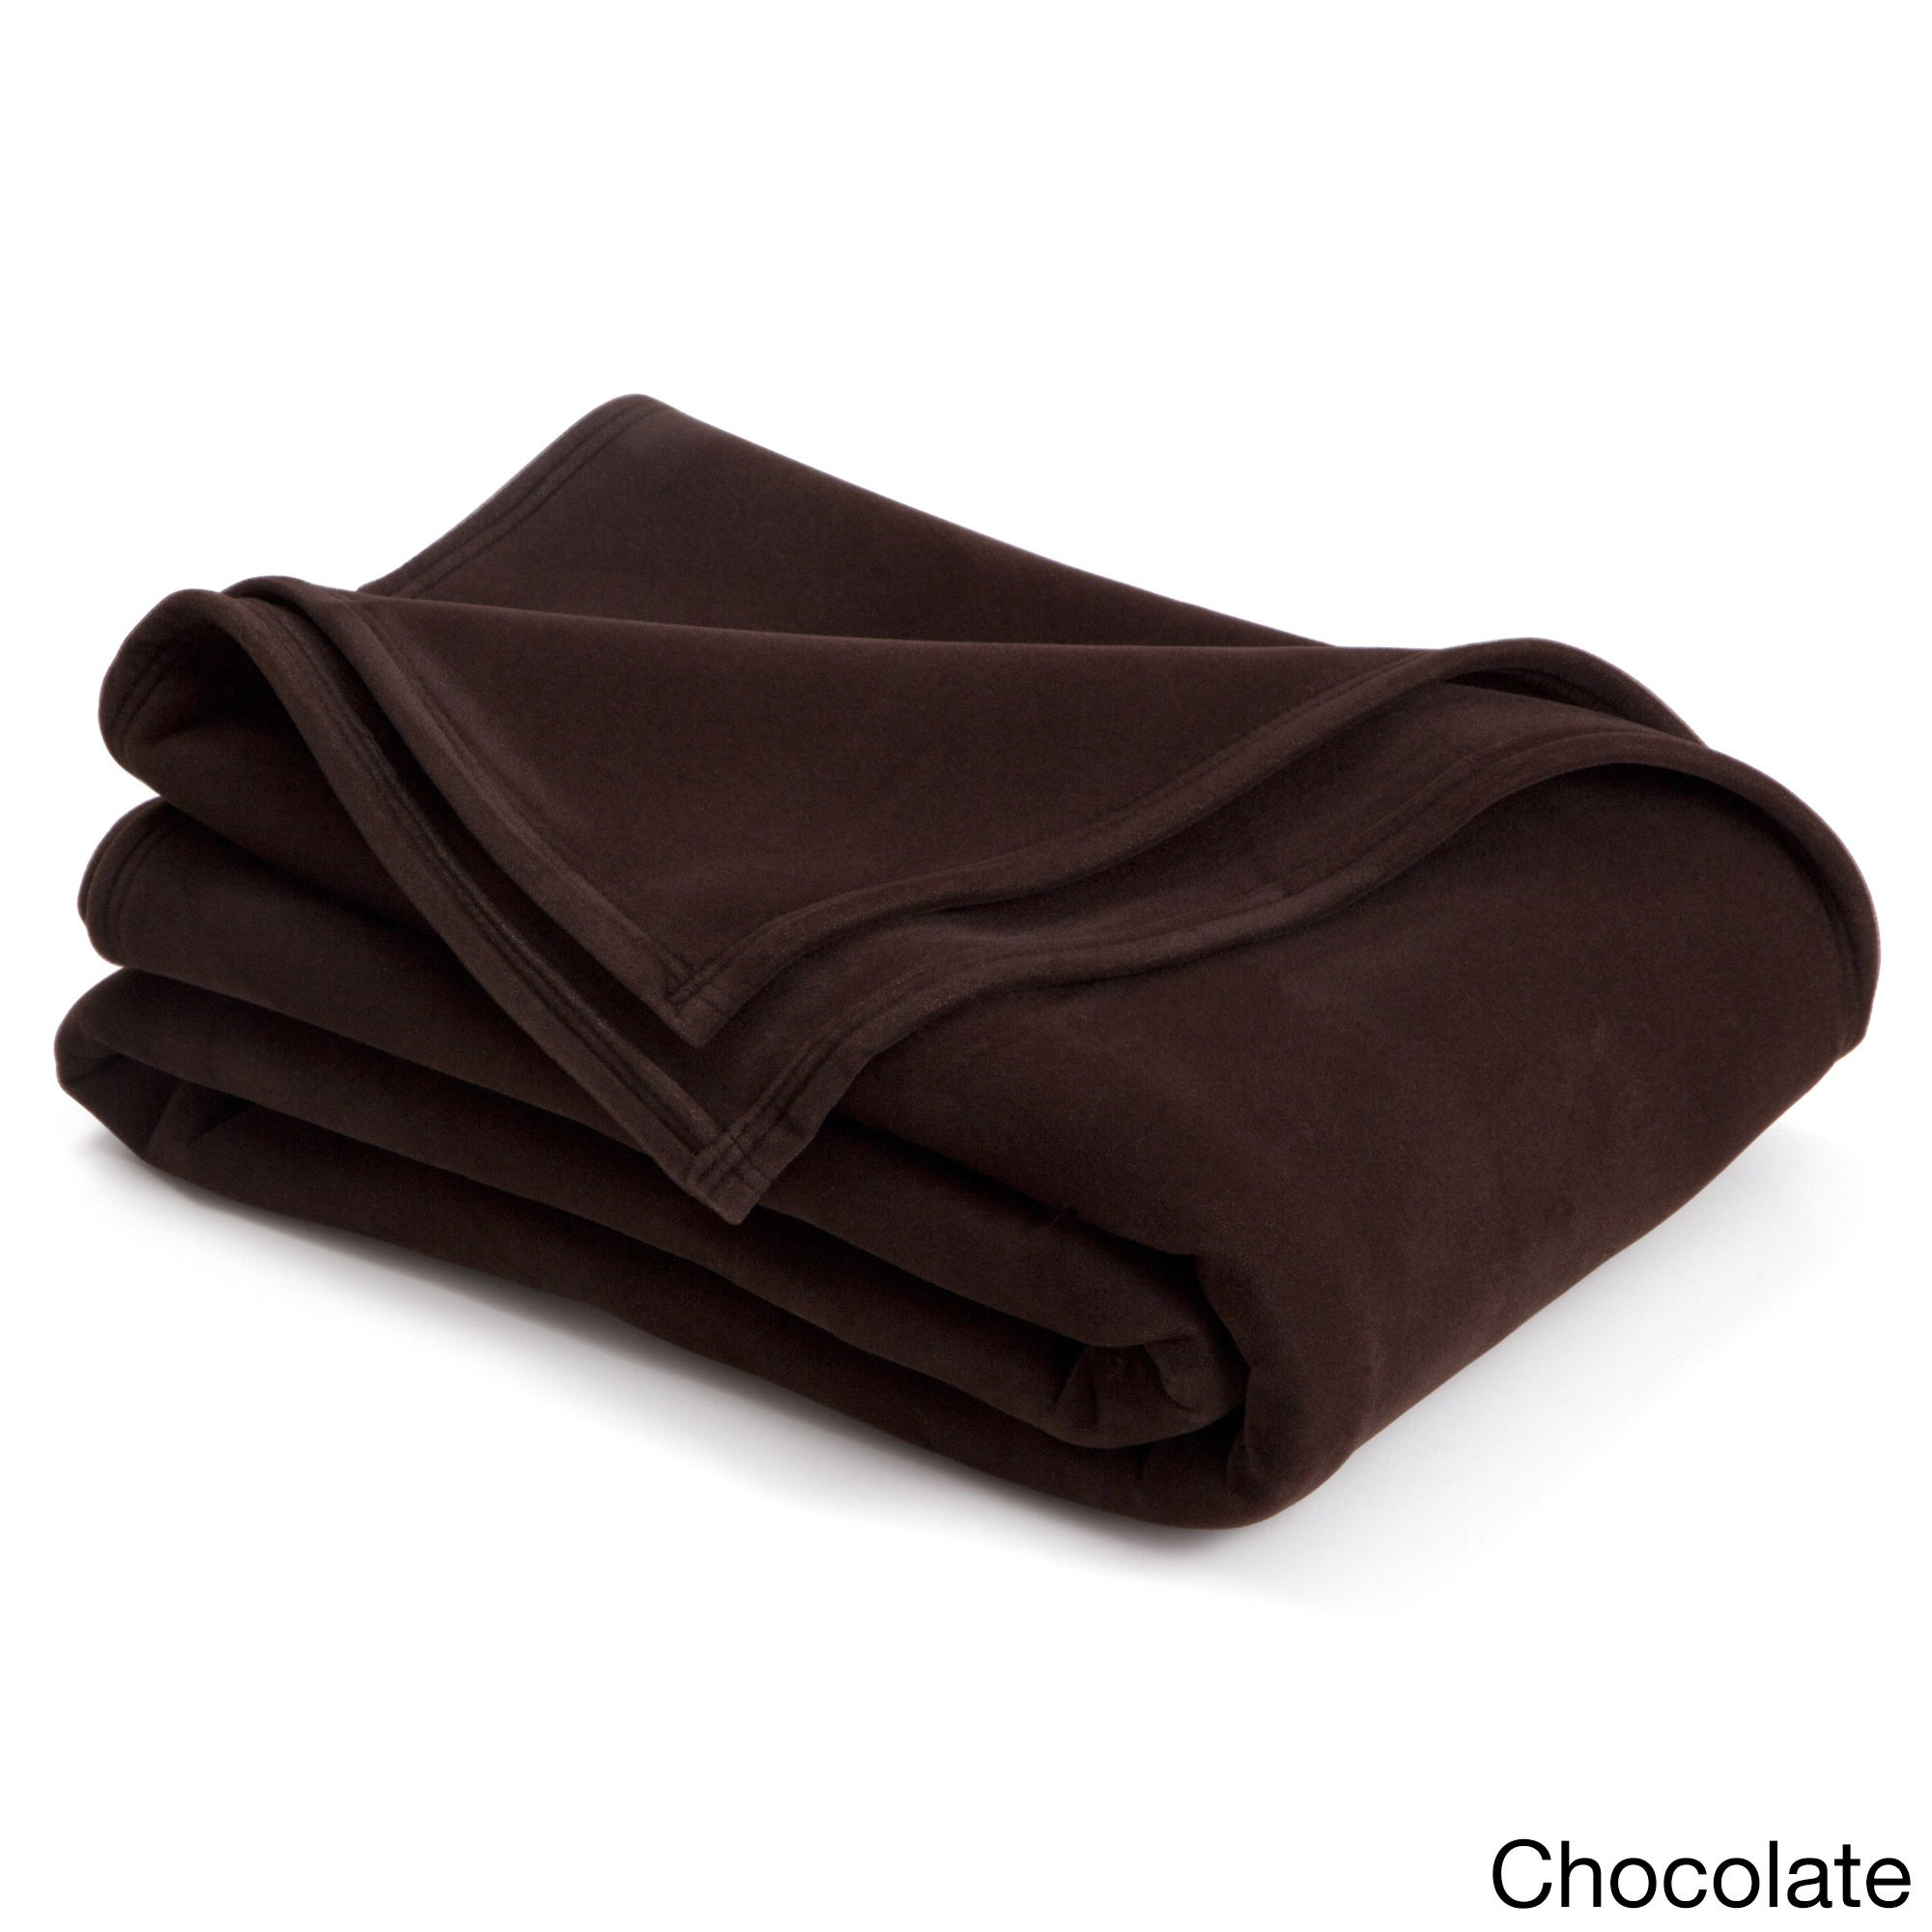 5b0023d561 Shop Vellux Original Solid Colored Microplush Blanket - Free Shipping On  Orders Over  45 - Overstock - 9535227